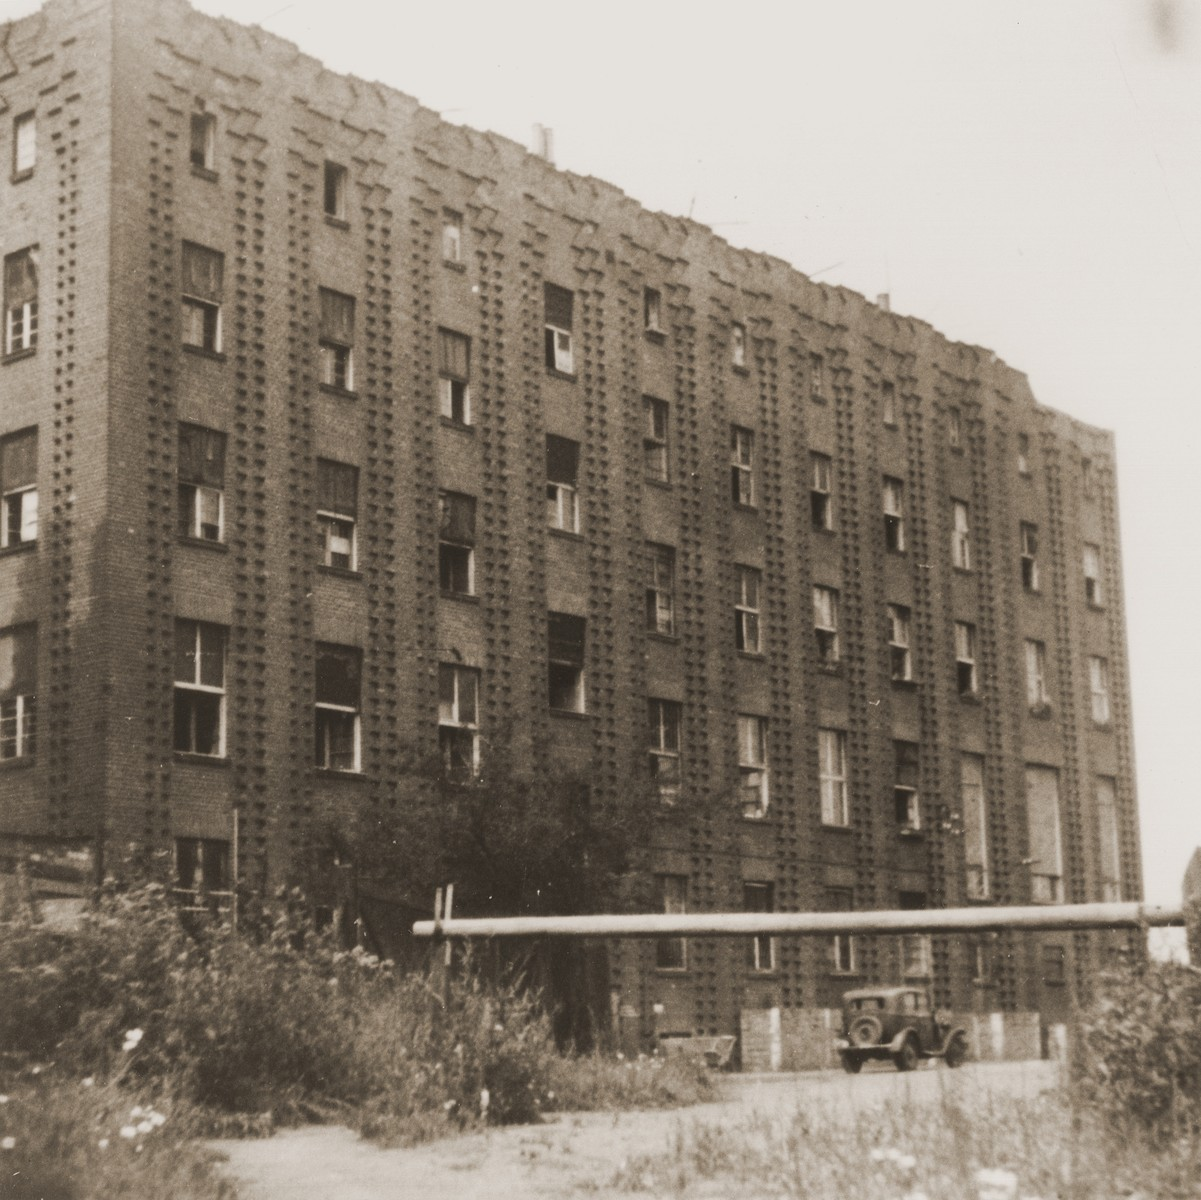 The Vinnhorst building on the outskirts of Hanover, which was used by the Nazis as an old-age home, housed approximately 200 Jewish DPs mostly from Bergen-Belsen.   Israel Zew Zaks was born in Przyrow, Poland on March 25, 1926 to Hela Gelbart (b. 1905) and Jakob (b. 1897) Zaks.  Jakob worked as a tailor, and Israel's older brother Natan was born in 1925 in Lodz.  In 1938 the family moved to Sosnowiec to be closer to their extended family.  Following the Nazi invasion, Israel and his family lived in the Jewish quarter on Dekerta Street until August 1942.  He worked in a uniform shop with his father while Natan worked in a furniture factory.  In August 1942 Israel was rounded up along with approximately 200 other young men and placed in a holding cell before being taken to a camp in Germany to set up the Krupp factory in Markstadt.  He never saw his family again.  In December 1944 Israel, along with 600 other prisoners, was forcibly marched to Gross Rosen in sub-zero temperatures with no protective clothing.  The following month he was marched from Gross Rosen to Goerlitz where he  was put to work making armored vehicles.  Once in Goerlitz, an SS man caught Israel and two other prisoners stealing discarded food from a dumpster behind the SS dining room.  He lined them up to be shot.  The men's lives were spared only because the SS man's gun repeatedly failed to fire.  On May 8, 1945 Israel was liberated by the Soviet army at the age of 19.  He tried to return to Sosnowiec but changed his mind after pogroms broke out in Poland.  Israel then went to Czechoslovakia and joined Bricha.  He then went to Gratz where he met with members of the Jewish Brigade.  Israel helped smuggle Jewish refugees into Tarvisio, Italy by setting up diversions.  He worked for a total of three months making two or three trips a week.  In December 1946 Israel moved to Zeilsheim DP camp before hearing that he had a cousin in Hannover.  Israel stayed in Hanover for the next three years.  He met his wife Mania Mell in December 1945, and the two were married the following April.  Mania was a survivor of the Lodz ghetto and the Auschwitz-Birkenau, Ravensbrueck, Mauthausen and Bergen-Belsen concentration camps.  In June 1949 Israel and Mania flew to the United Stated from Bremen, Germany.